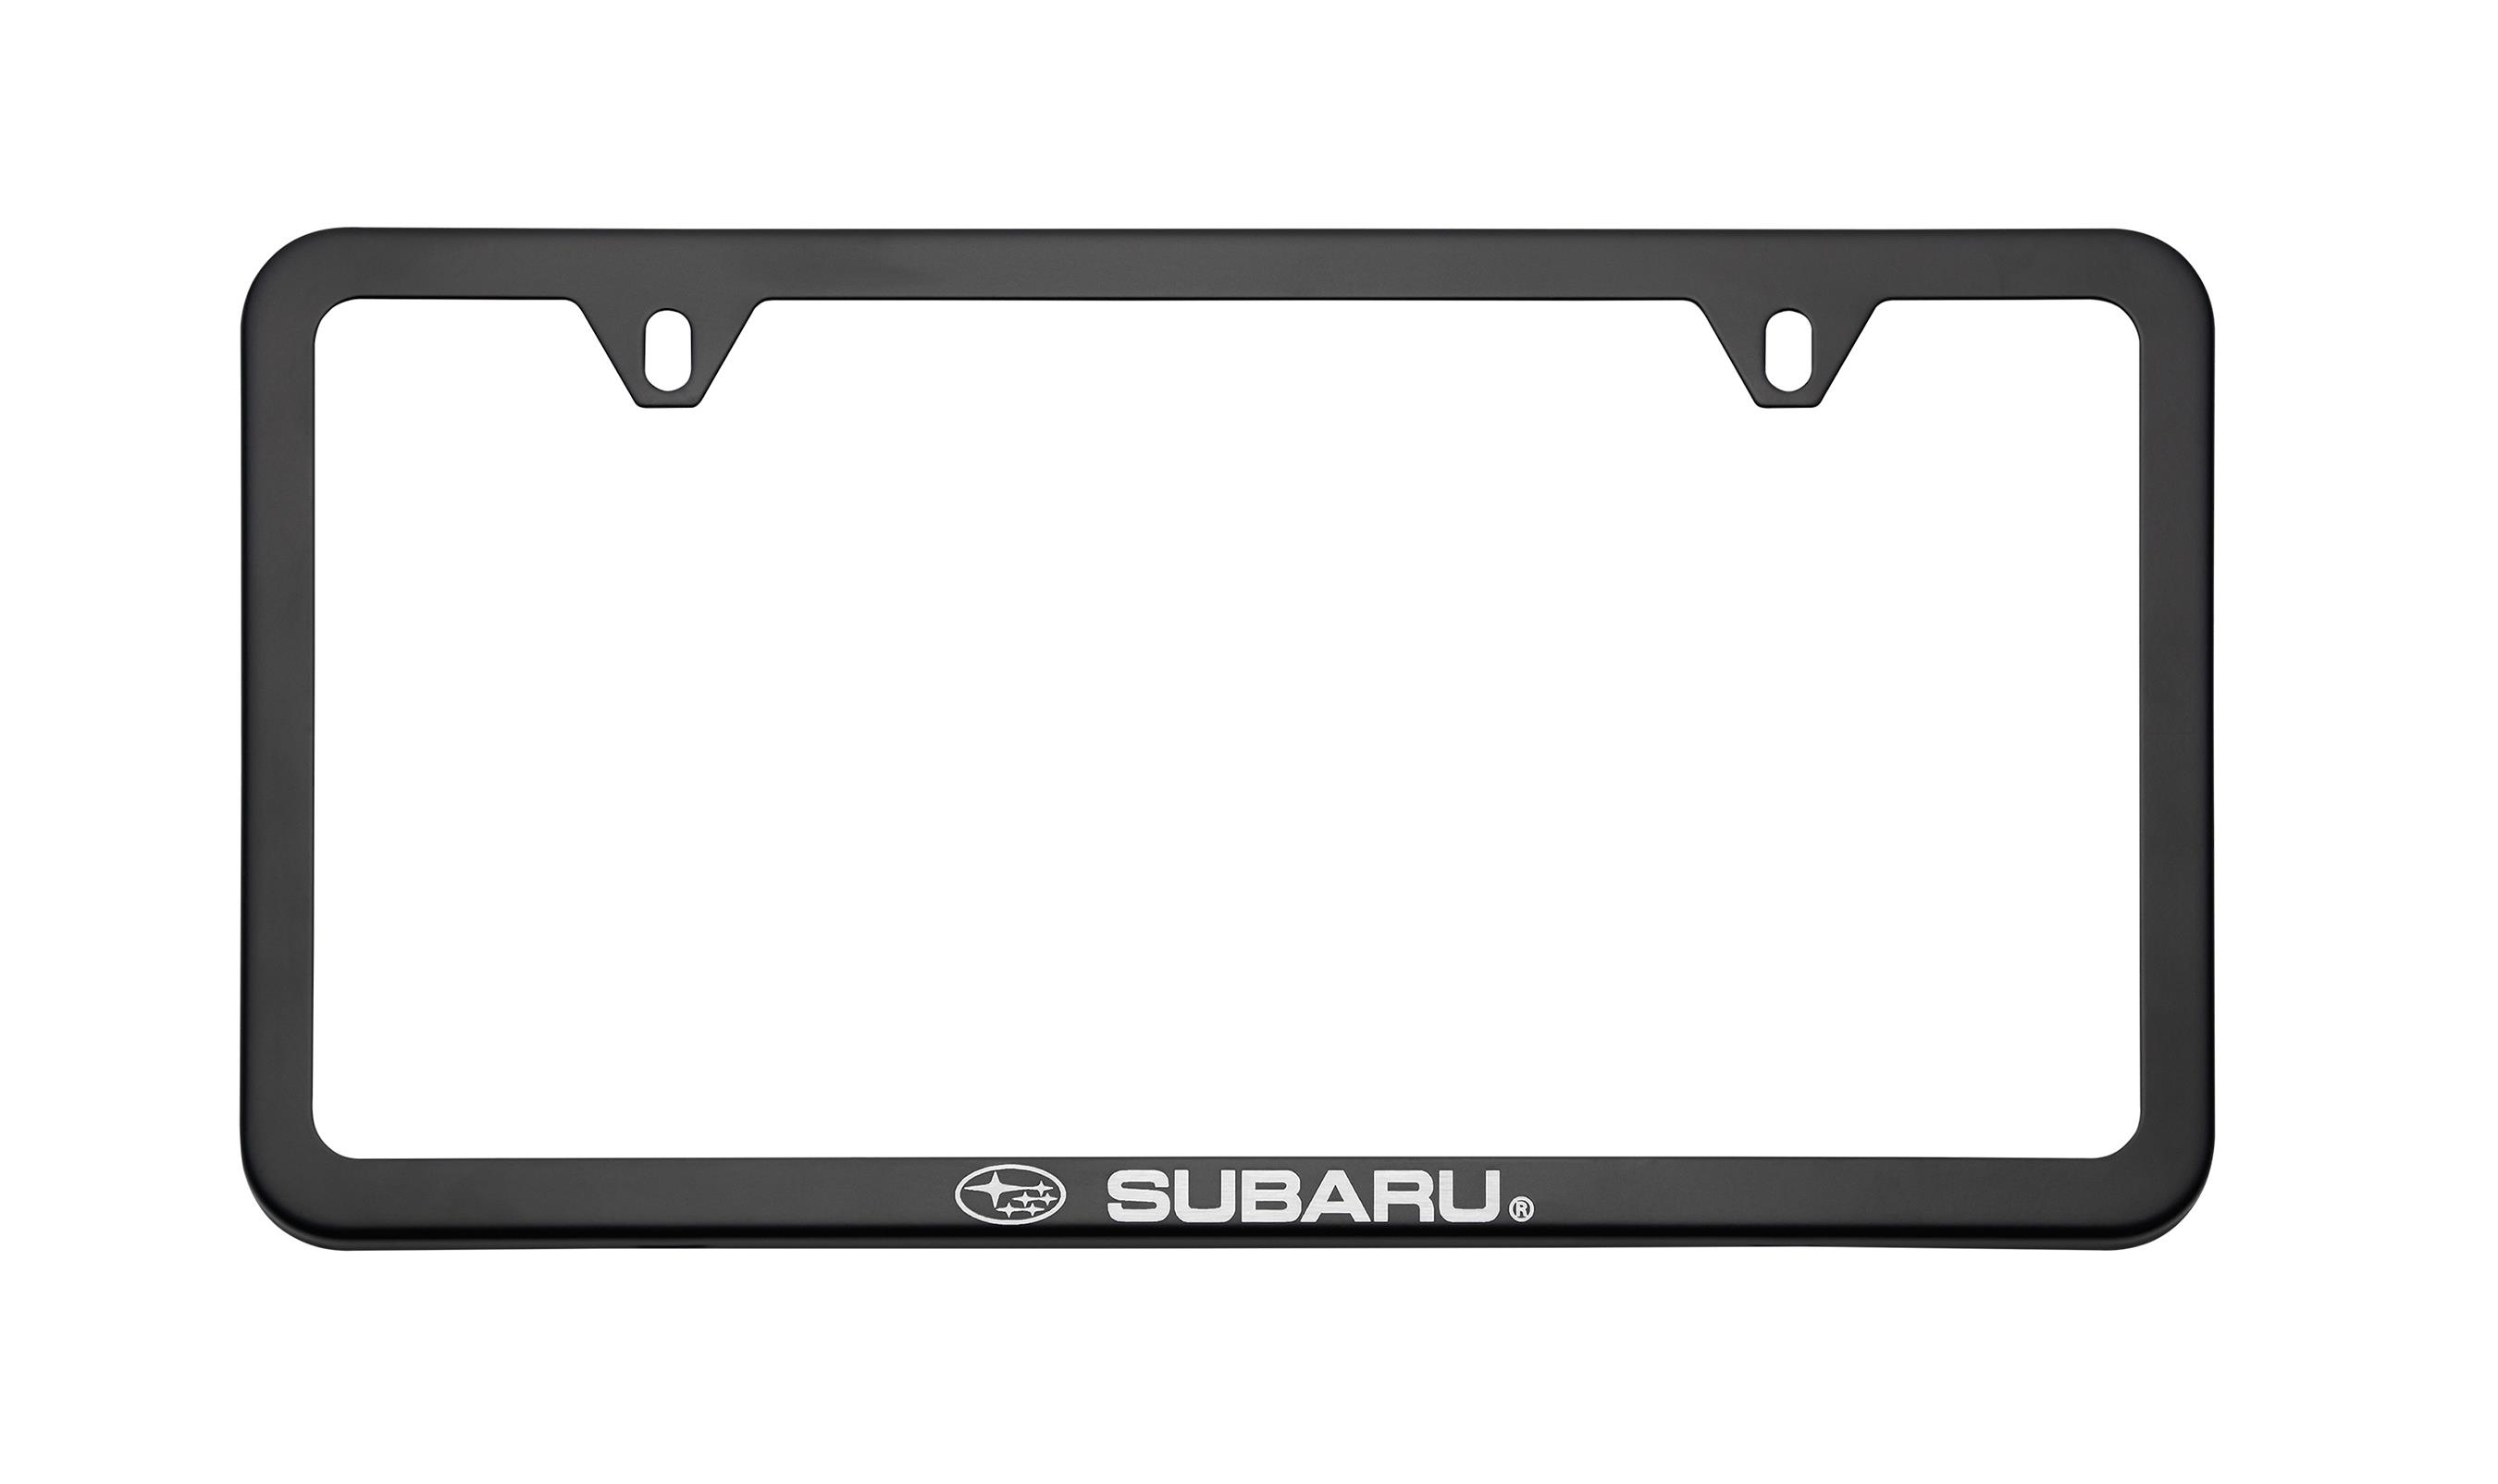 Shop Genuine 2018 Subaru Crosstrek Accessories From Subaru